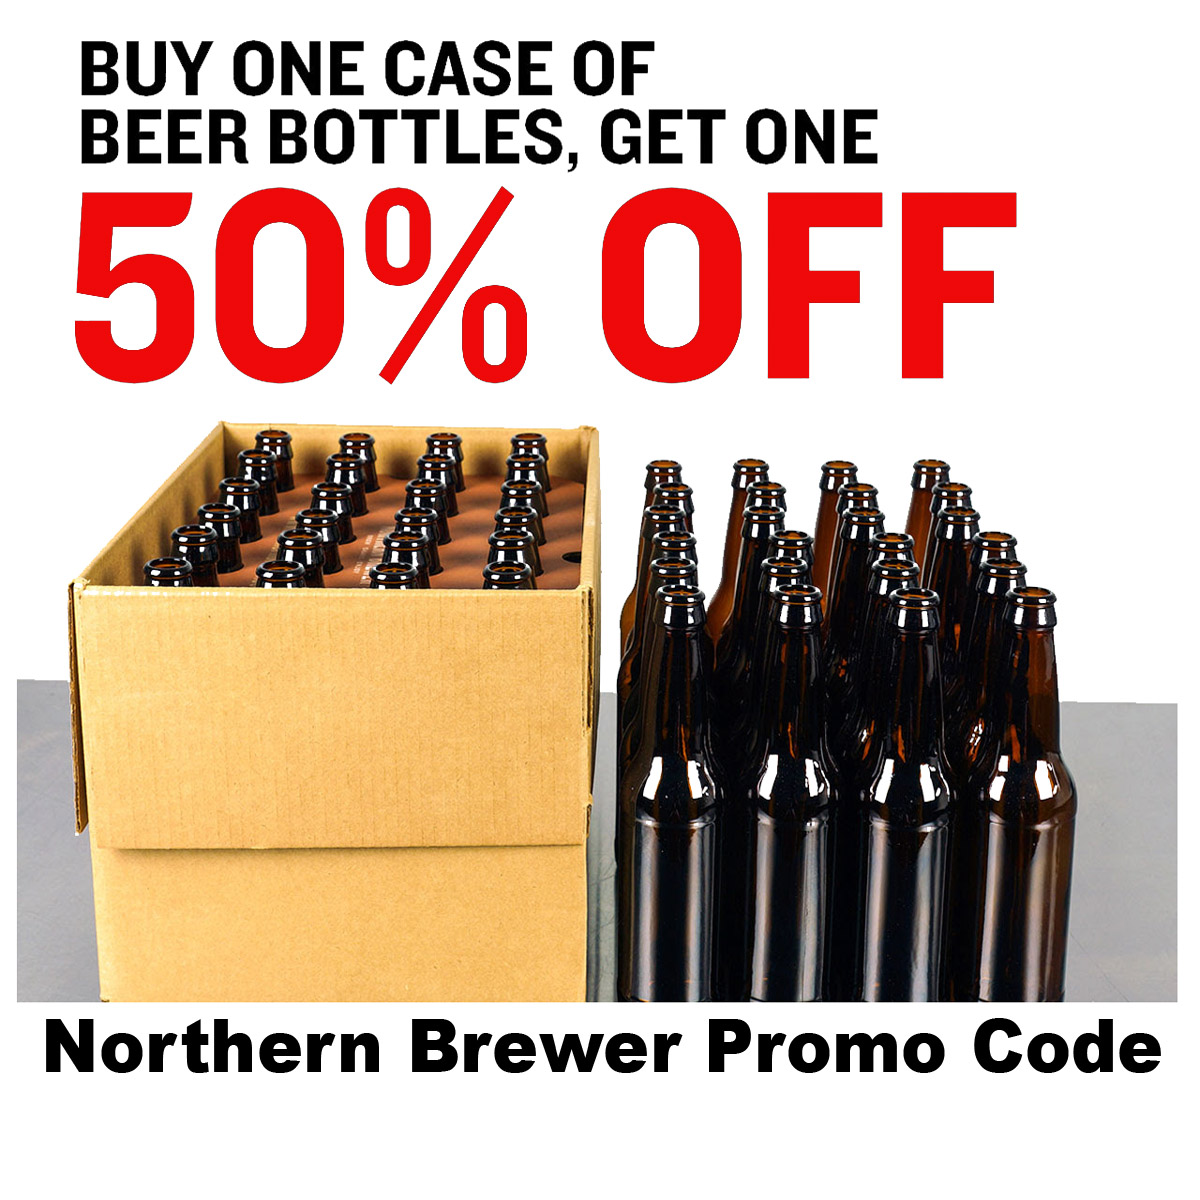 Northern Brewer Buy One Case of Bottles Get One For 50% Off NorthernBrewer.com Promo Code Coupon Code